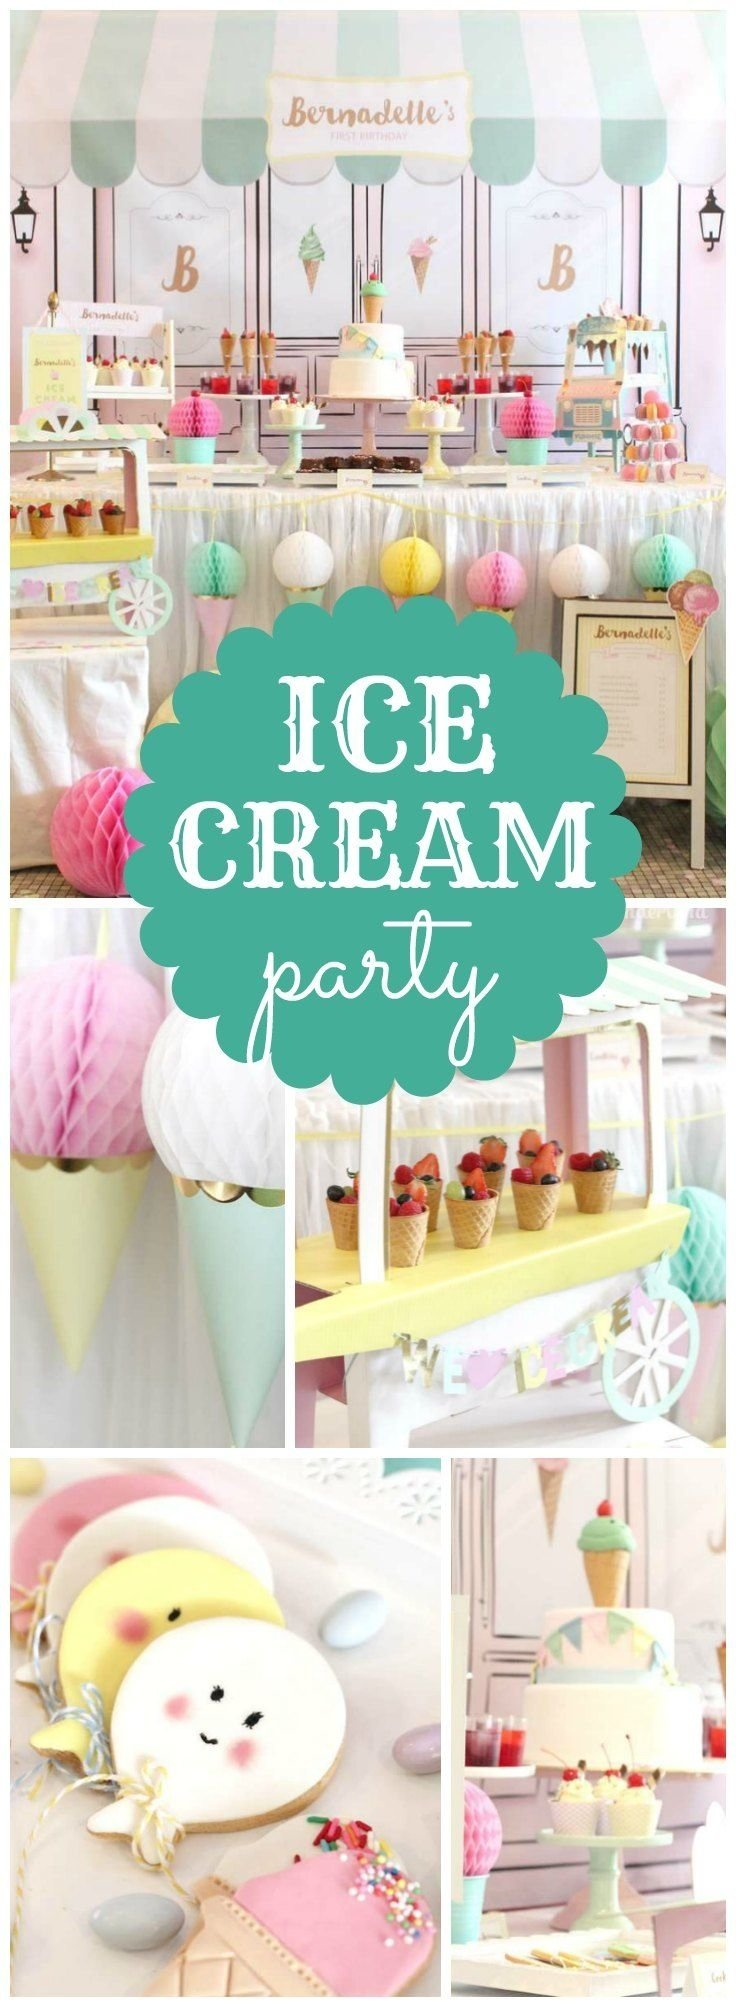 10 Stylish Fun Birthday Ideas For Girls 416 best girl birthday party ideas images on pinterest birthday 9